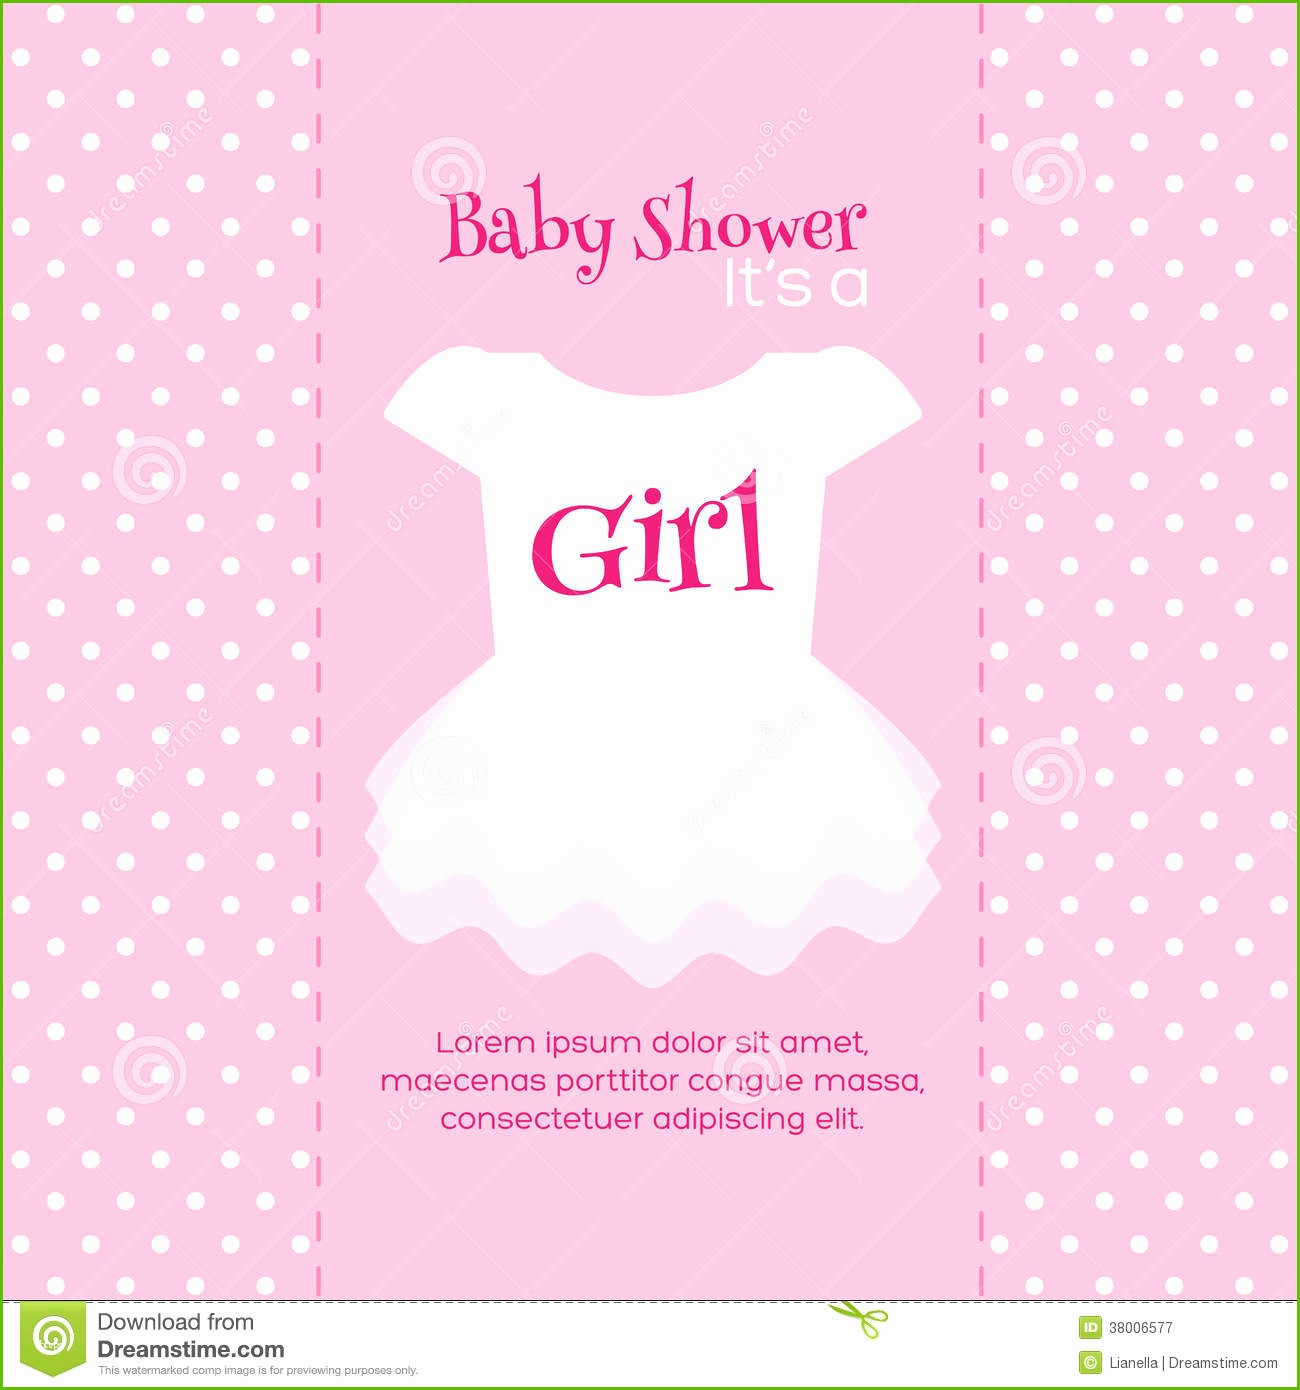 Full Size of Baby Shower:sturdy Baby Shower Invitation Template Image Concepts Baby Shower Poems With Baby Shower Accessories Plus Baby Shower Props Together With Save The Date Baby Shower As Well As Baby Shower Paper